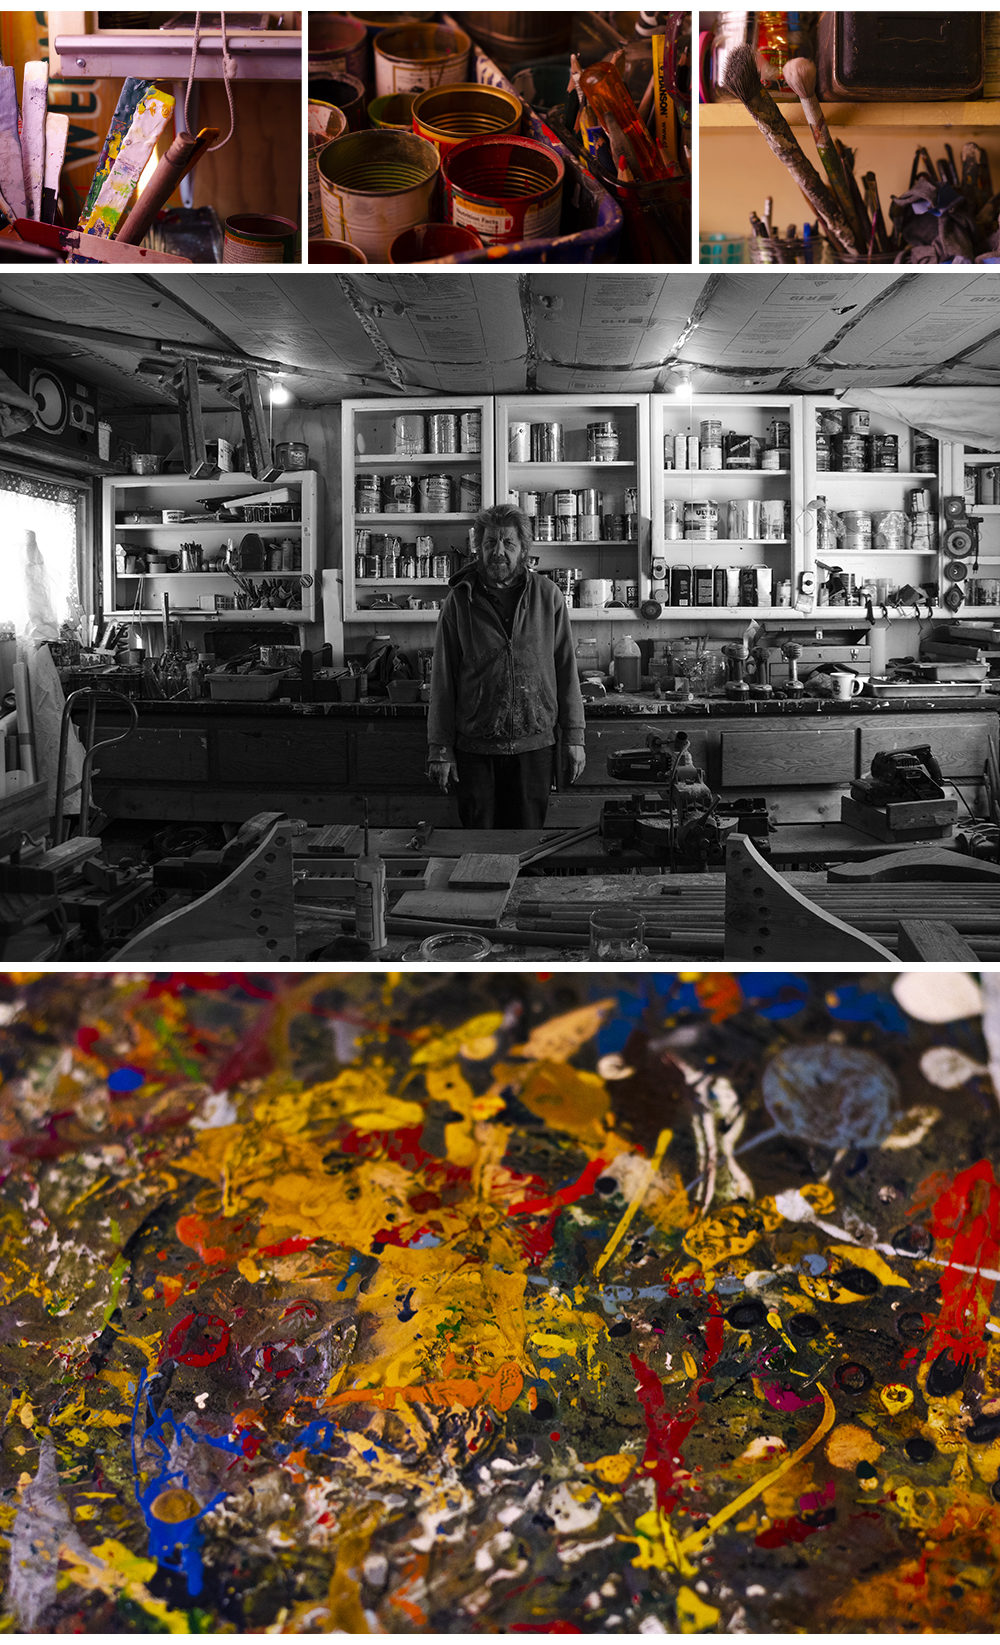 Top: The various paint cans, brushes, and tools that lay scattered atop the workbench, which is made from an old waterbed frame, in Phil's garage. Middle: Phil poses for a portrait inside of his garage. Bottom: The paint splattered and heavily layered workbench top // Photos by Aaron Job